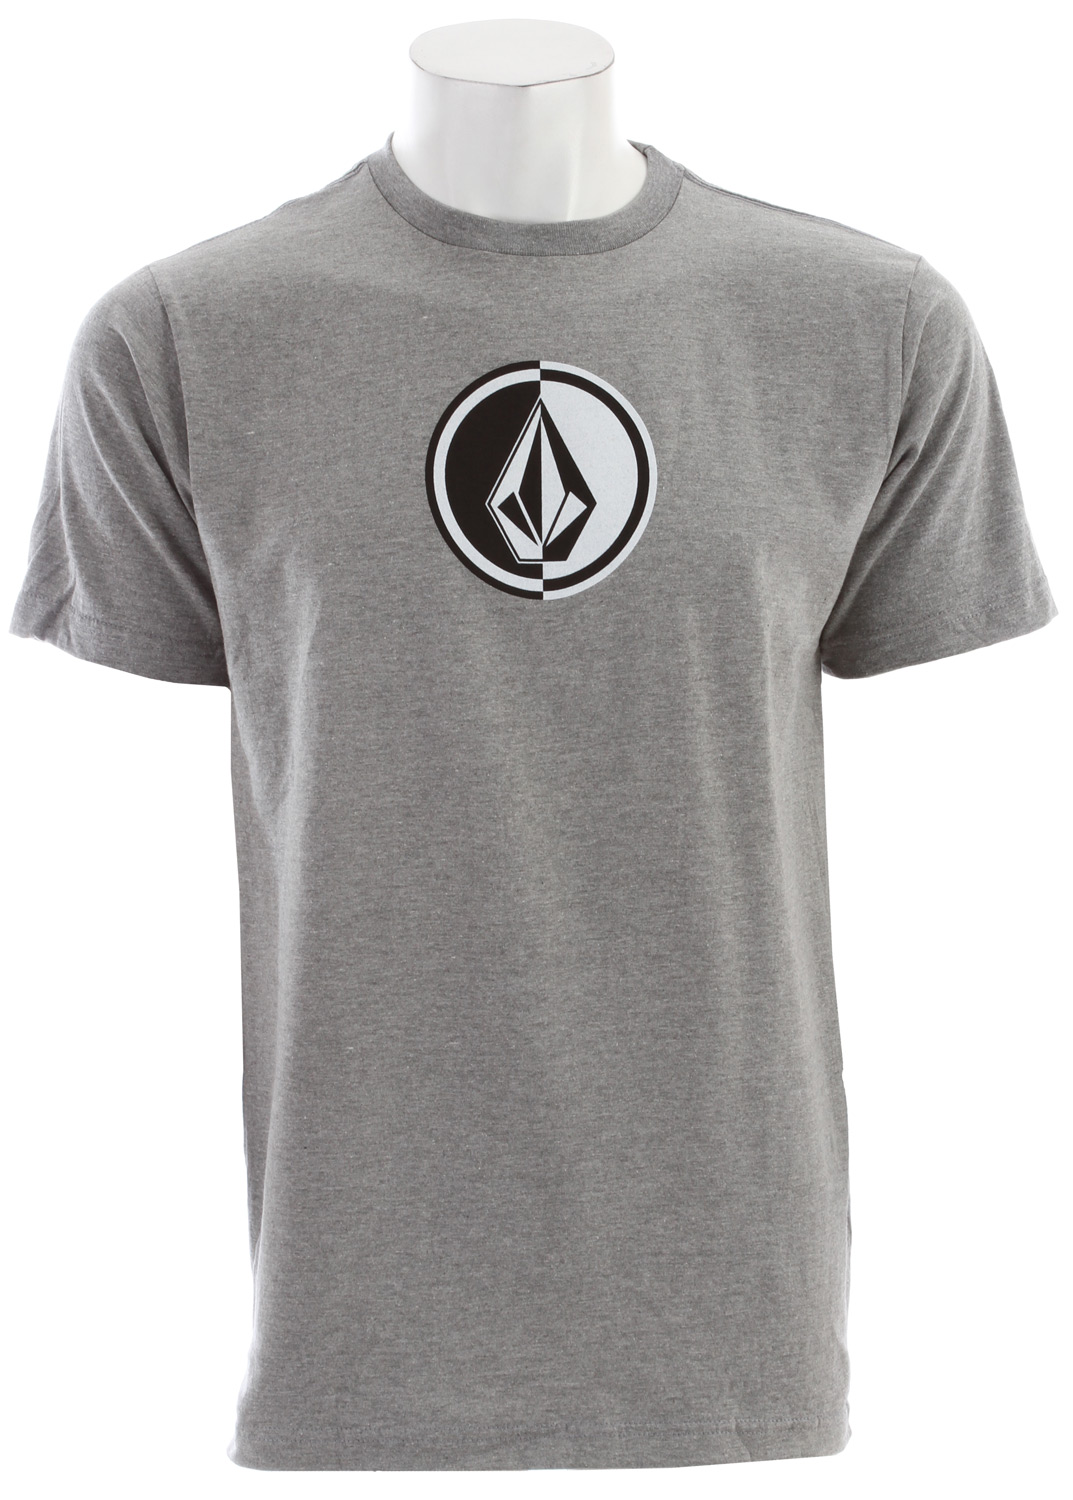 Surf Key Features of the Volcom Circle Stone T-Shirt: Basic Screenprint Basic Fit Solids: 100% Cotton; Heathers: 75% Cotton /25% Polyester - $12.95